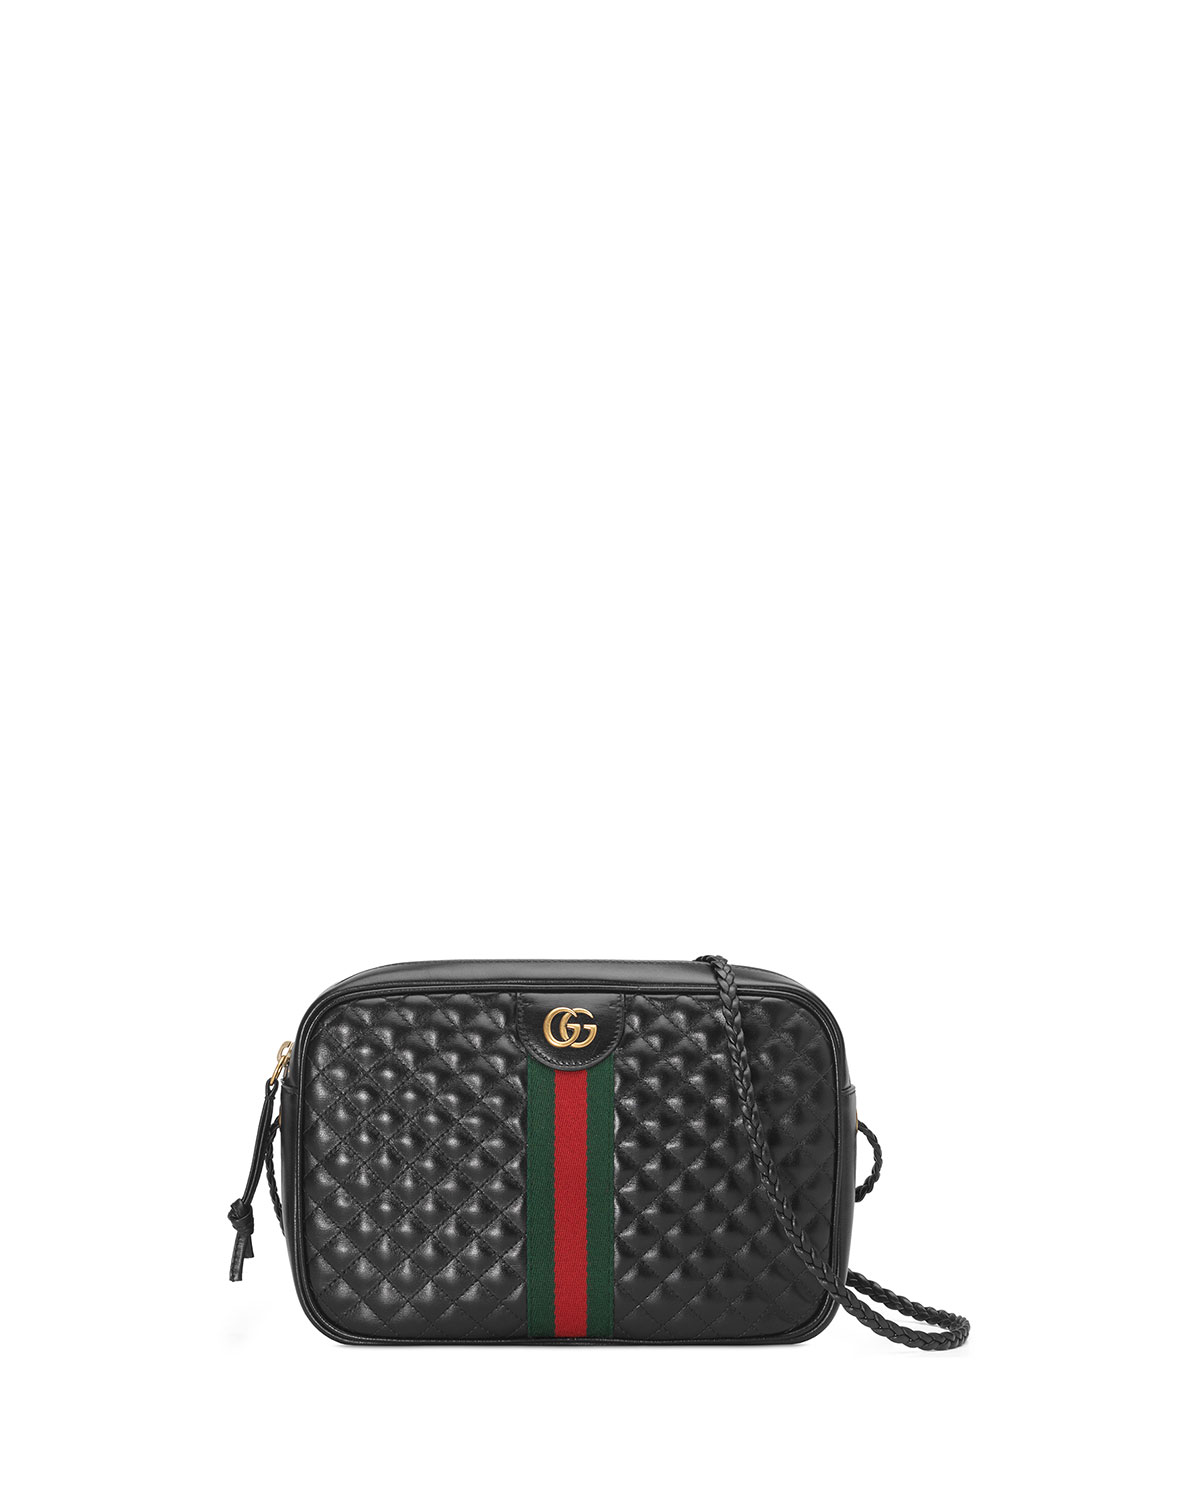 b5d4826673c9 Gucci Trapuntata Small Quilted Leather Crossbody Camera Bag | Neiman ...